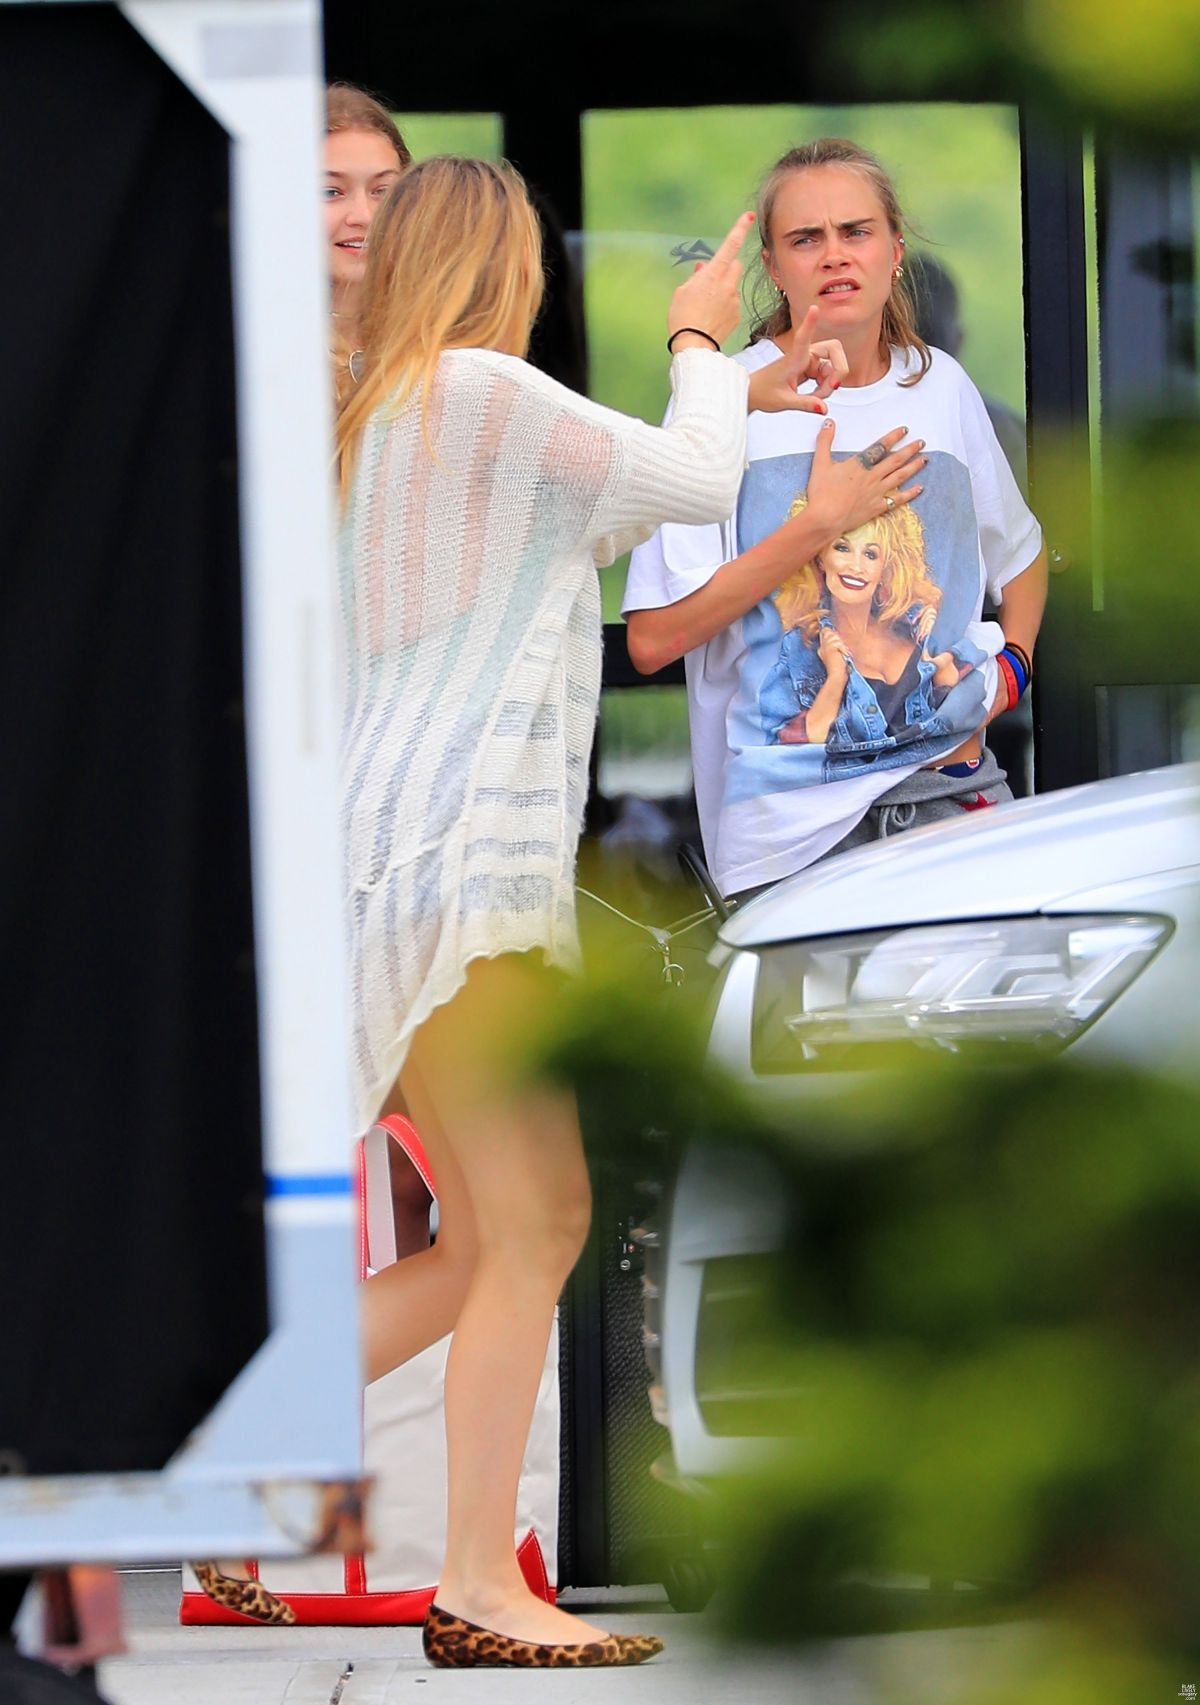 BLAKE LIVELY Arrives at Private Airport in Rhode Island 07/05/2016